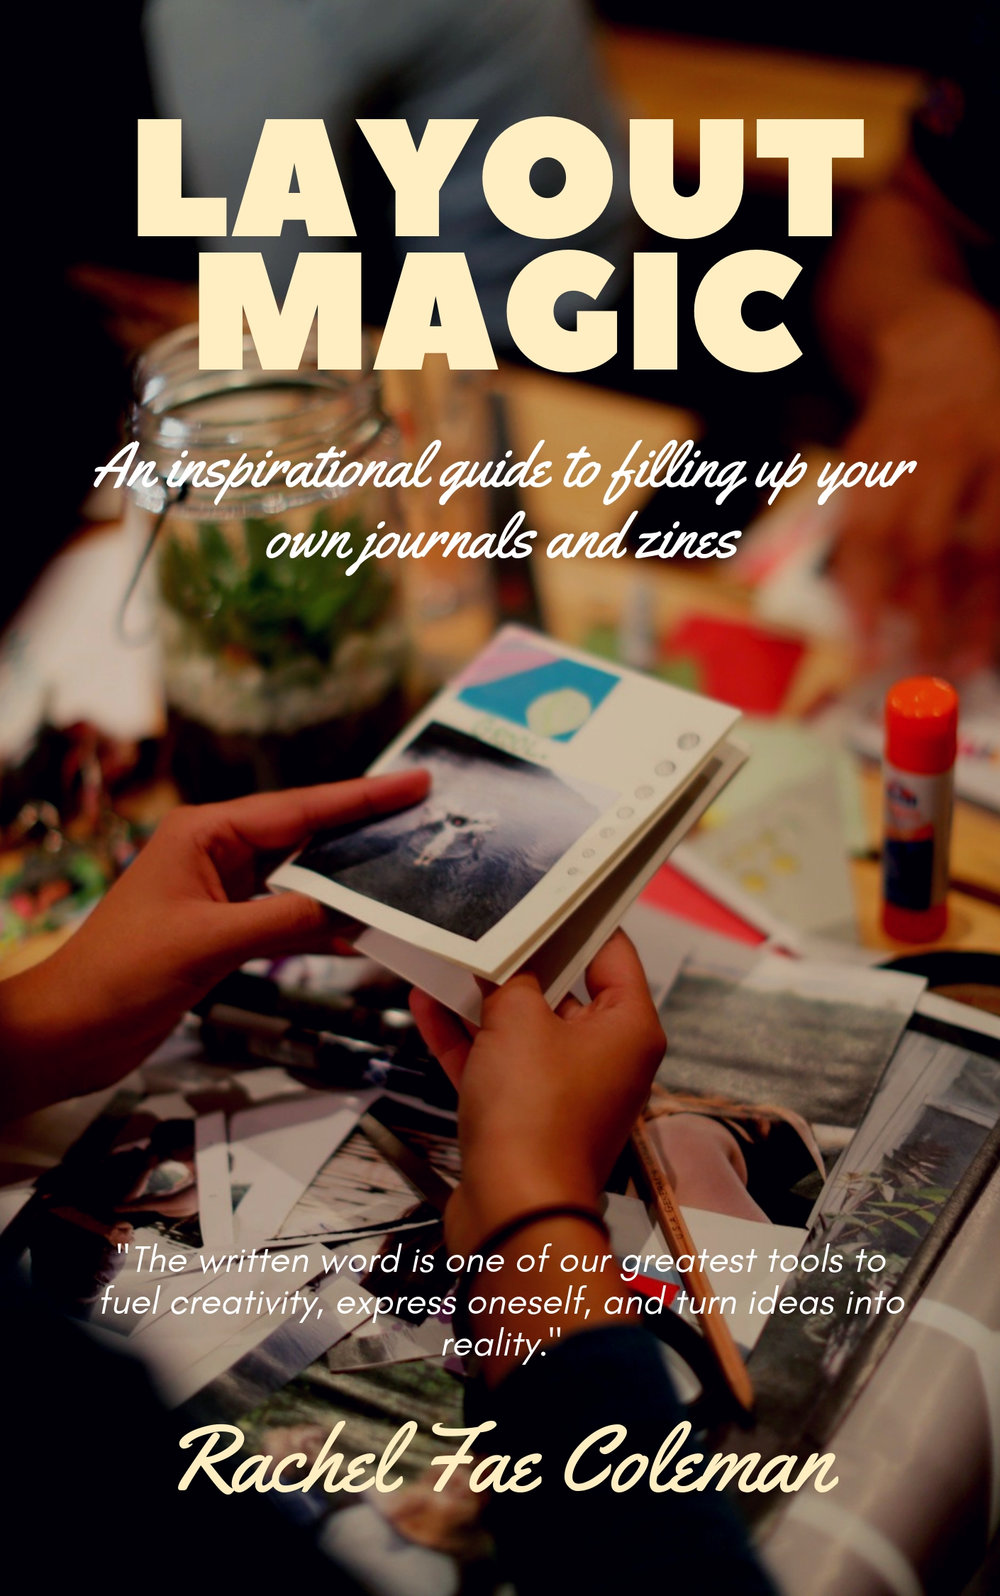 LAYOUT MAGIC - An Inspirational Guide to Filling up Your Own Journals and ZinesWith the practice of journaling, I have been able to reflect on my life since I was quite young, practice my authentic voice, make changes for the better, stay organized, and simply enjoy. It's an ongoing practice of self-discovery. Journaling adds an extra magic as no one is looking over my shoulder and I have no obligations to impress. My life may not make sense to some of those around me, but it makes perfect sense to me because I write. When traveling, I never go without my journals. Along with the written word is the visual image. Images add another dimension by creating a narrative whether photographs, magazine clippings, sketches, or freestyle doodles. The best thing of all is there are no right or wrong answers, ways of filling up a journal or making a zine. I love teaching others how to create a format that inspires them to go with the flow, seeing what unfolds. There are so many artistic mediums available from felt-tip pens, to pastels, to colored tape. As you continue to practice journaling you may realize your true passion for maybe poetry. You may enjoy telling bold abstract stories without words but with collaged images. You may feel called to create an impactful zine on a subject important to you like women's rights or clean water. You may be able to tackle that nagging to-do list in a more productive way. You may finally write that screenplay you've always dreamt of. Journaling has no age limit and no set rules. This book can be applied to anyone on a creative pursuit. From words alone, bigger ideas come to life.